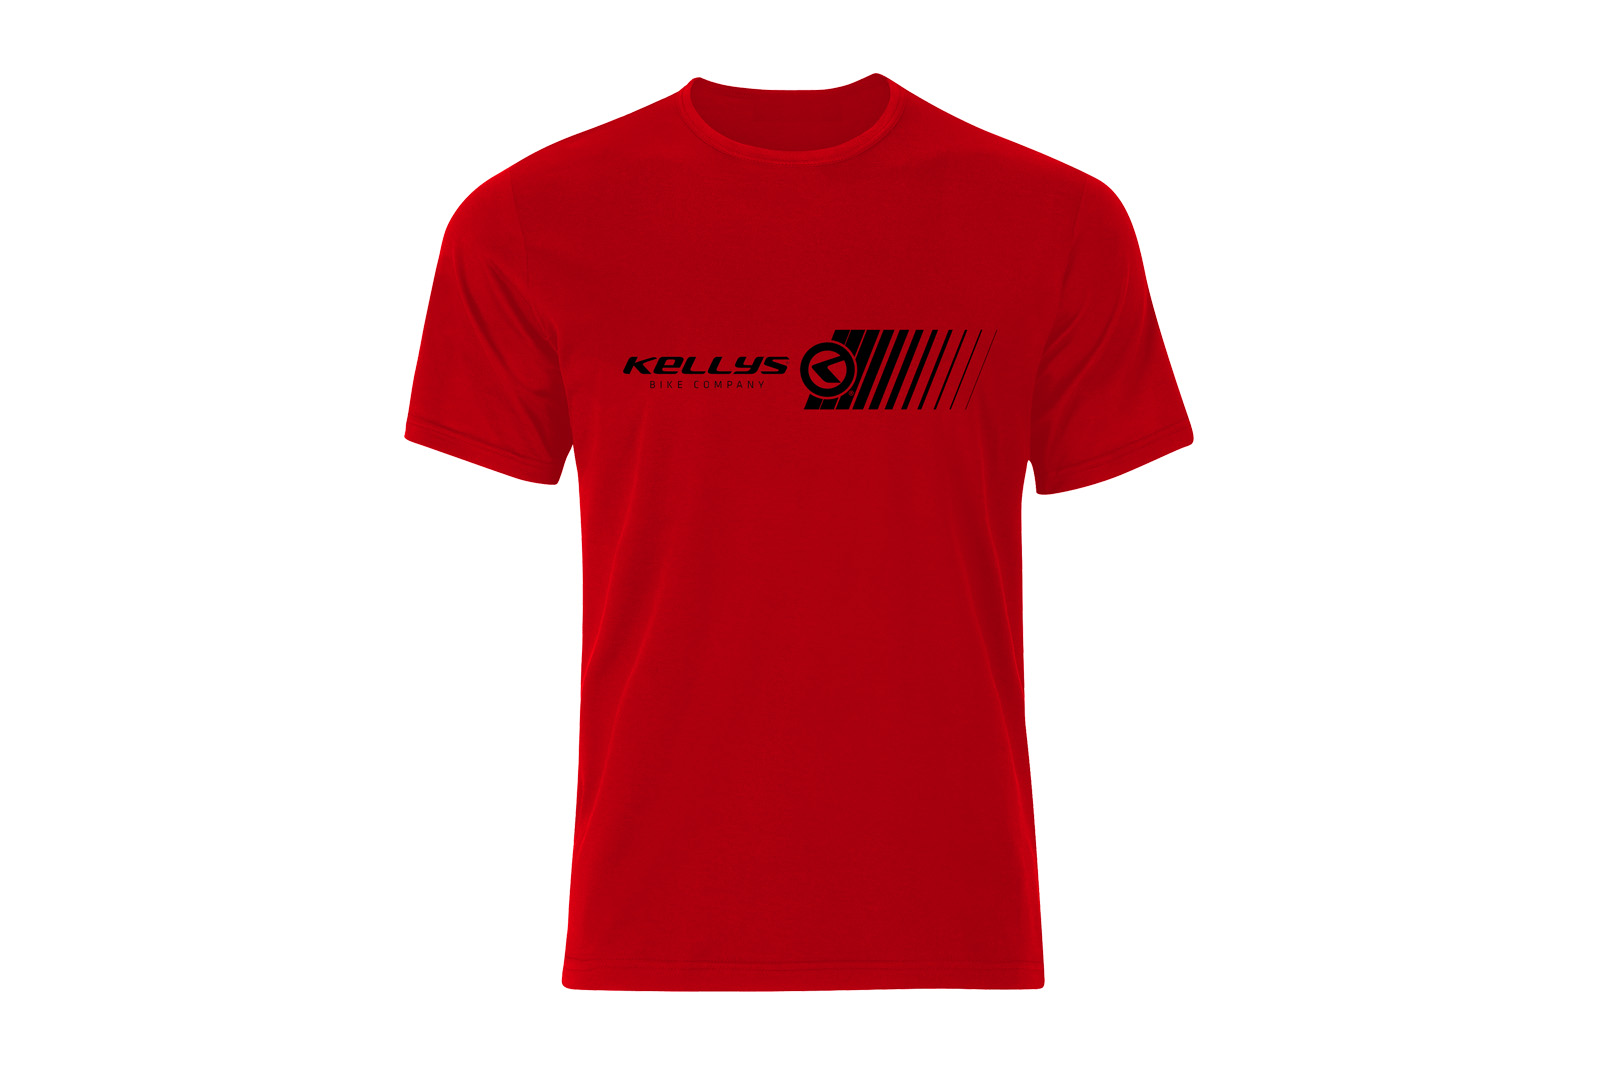 T-Shirt KELLYS LOGO kurzarm red - XL - T-Shirt KELLYS LOGO kurzarm red - XL